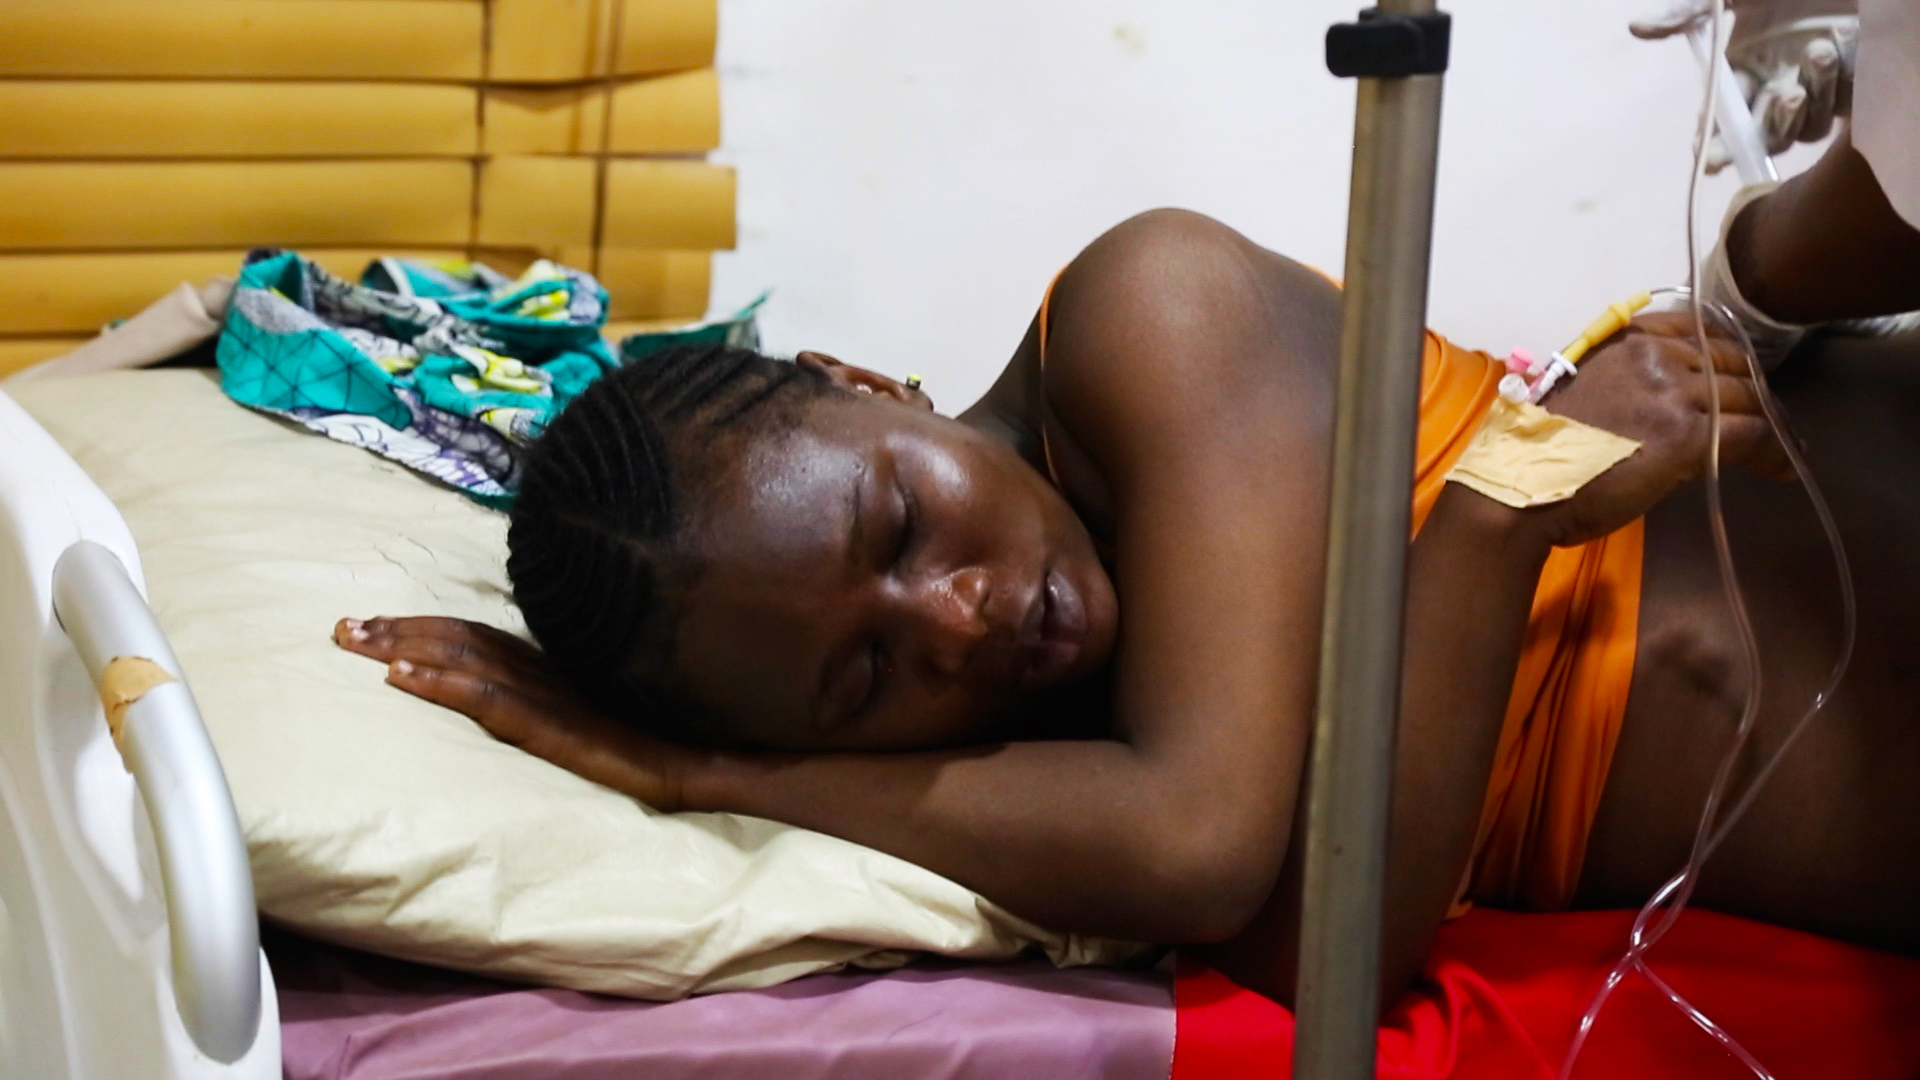 Radiya Rufai is experiencing a lot of pain as her blood pressure rises. It's her first delivery. But cultural norms expect that she suppresses any outward signs of discomfort. (Photo: Chika Oduah for VOA)